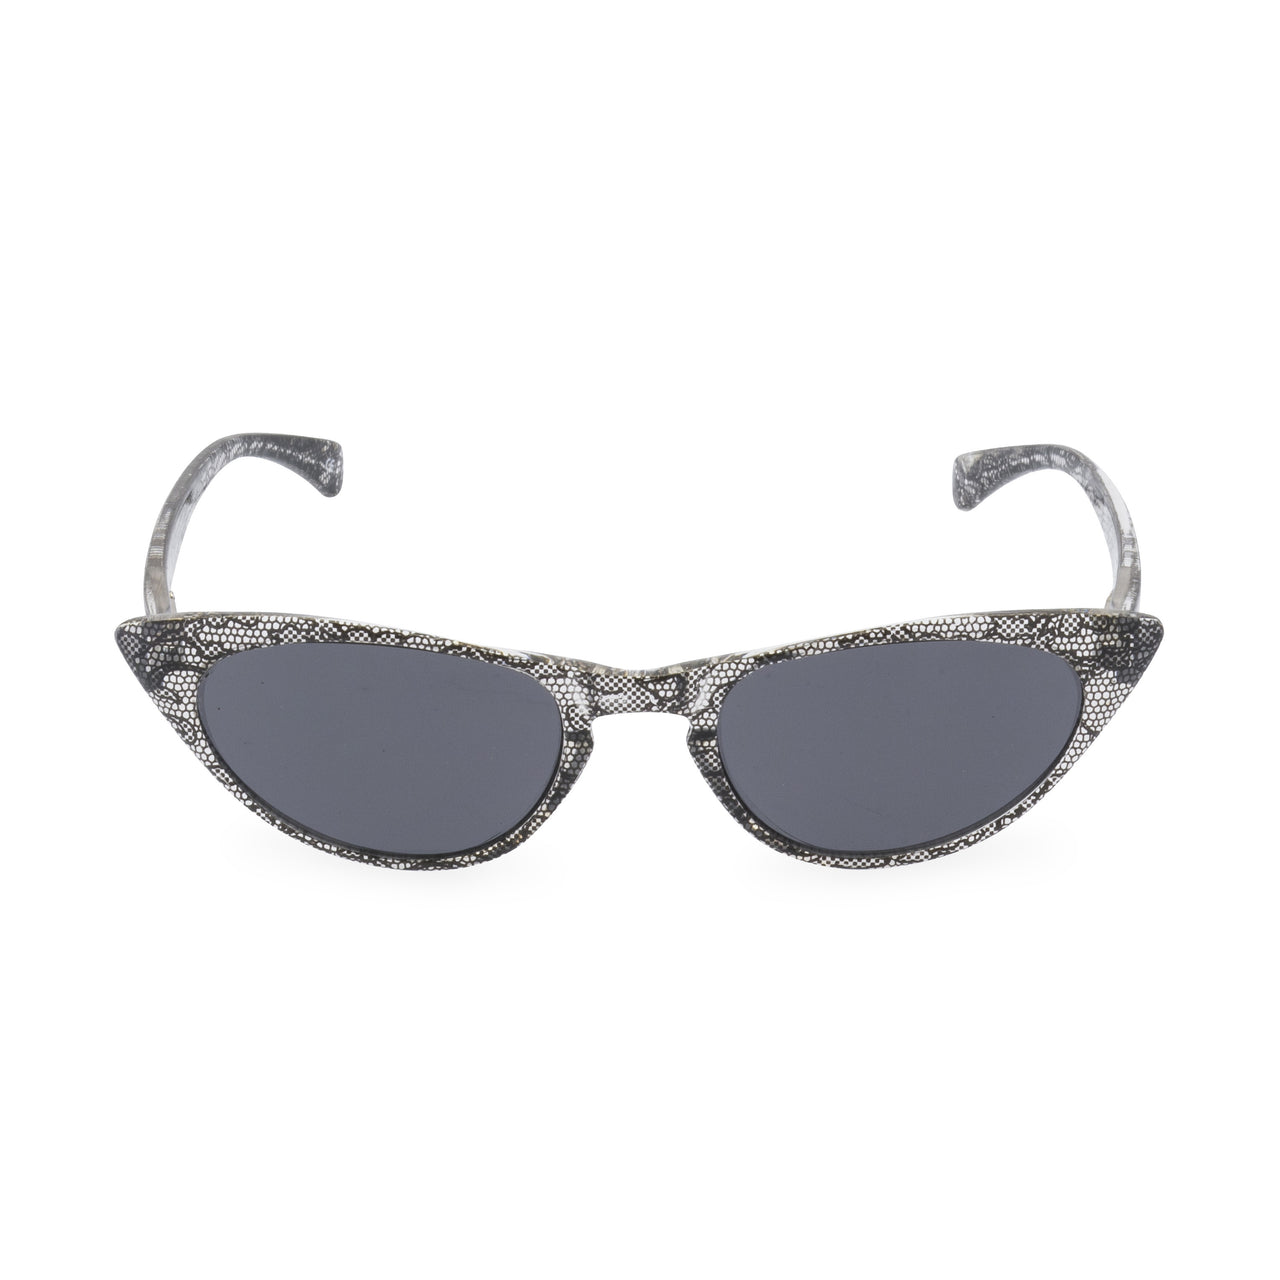 Peggy - Sunglasses Black Lace